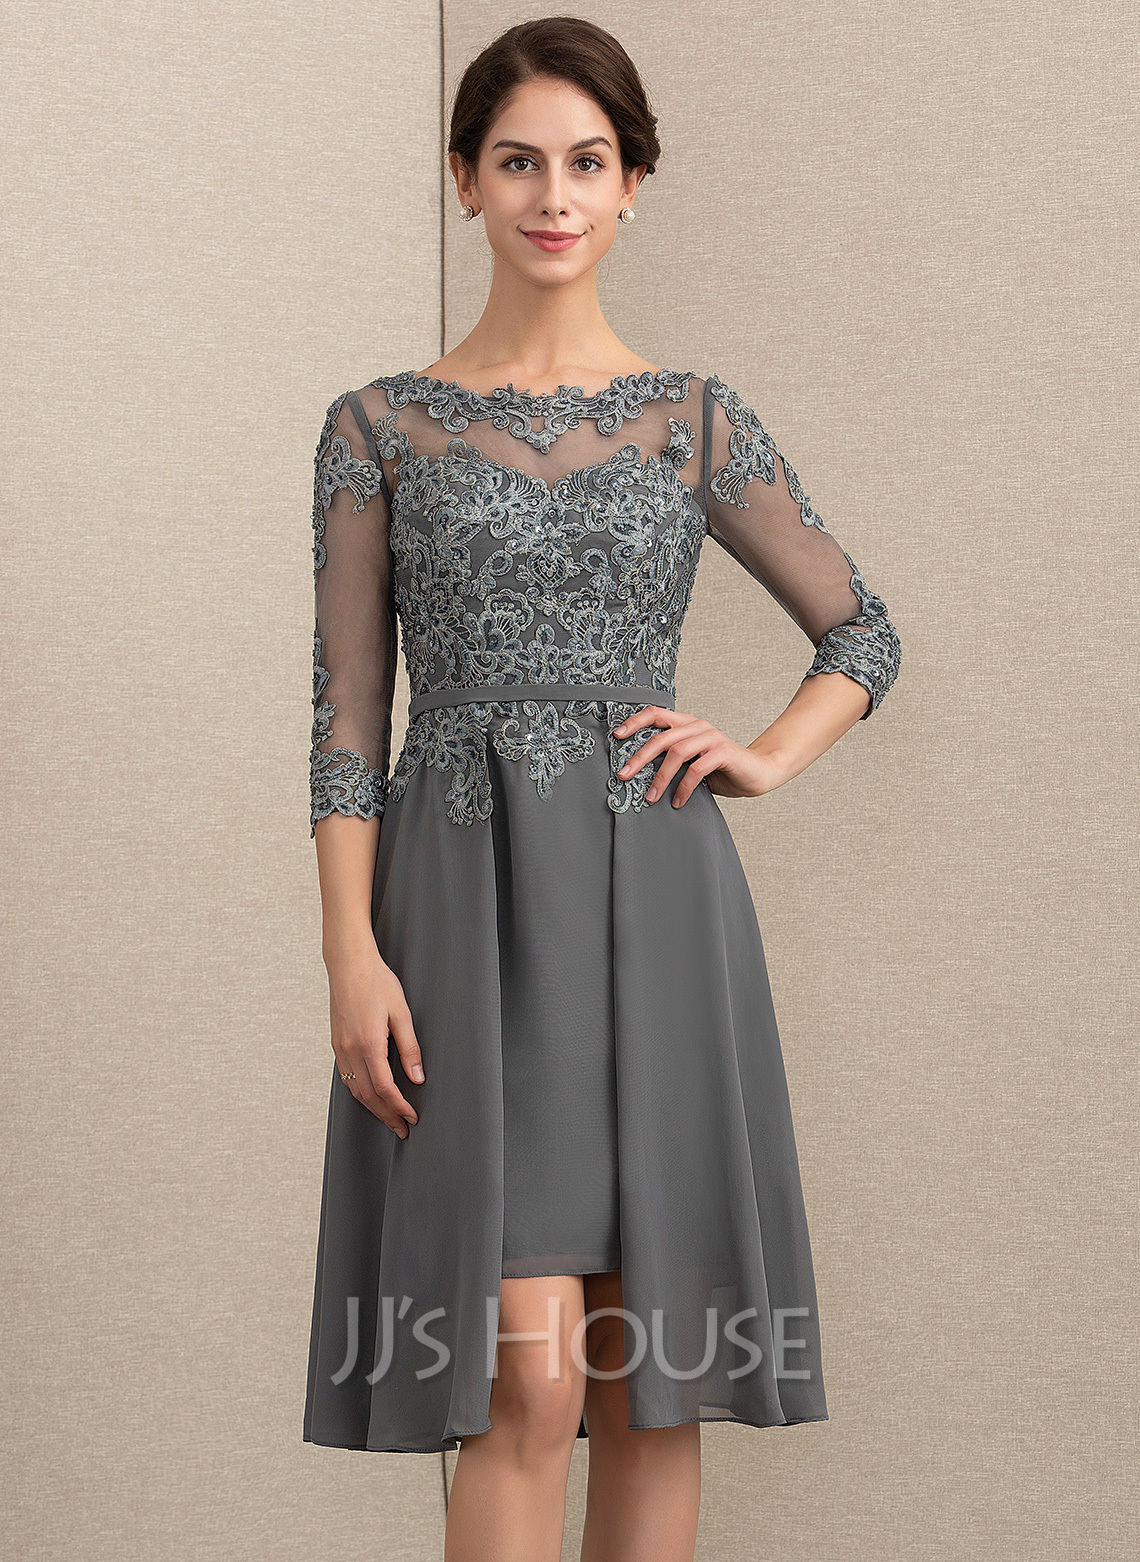 a3585c99b9f6 A-Line Princess Scoop Neck Asymmetrical Chiffon Lace Mother of the Bride  Dress With. Loading zoom